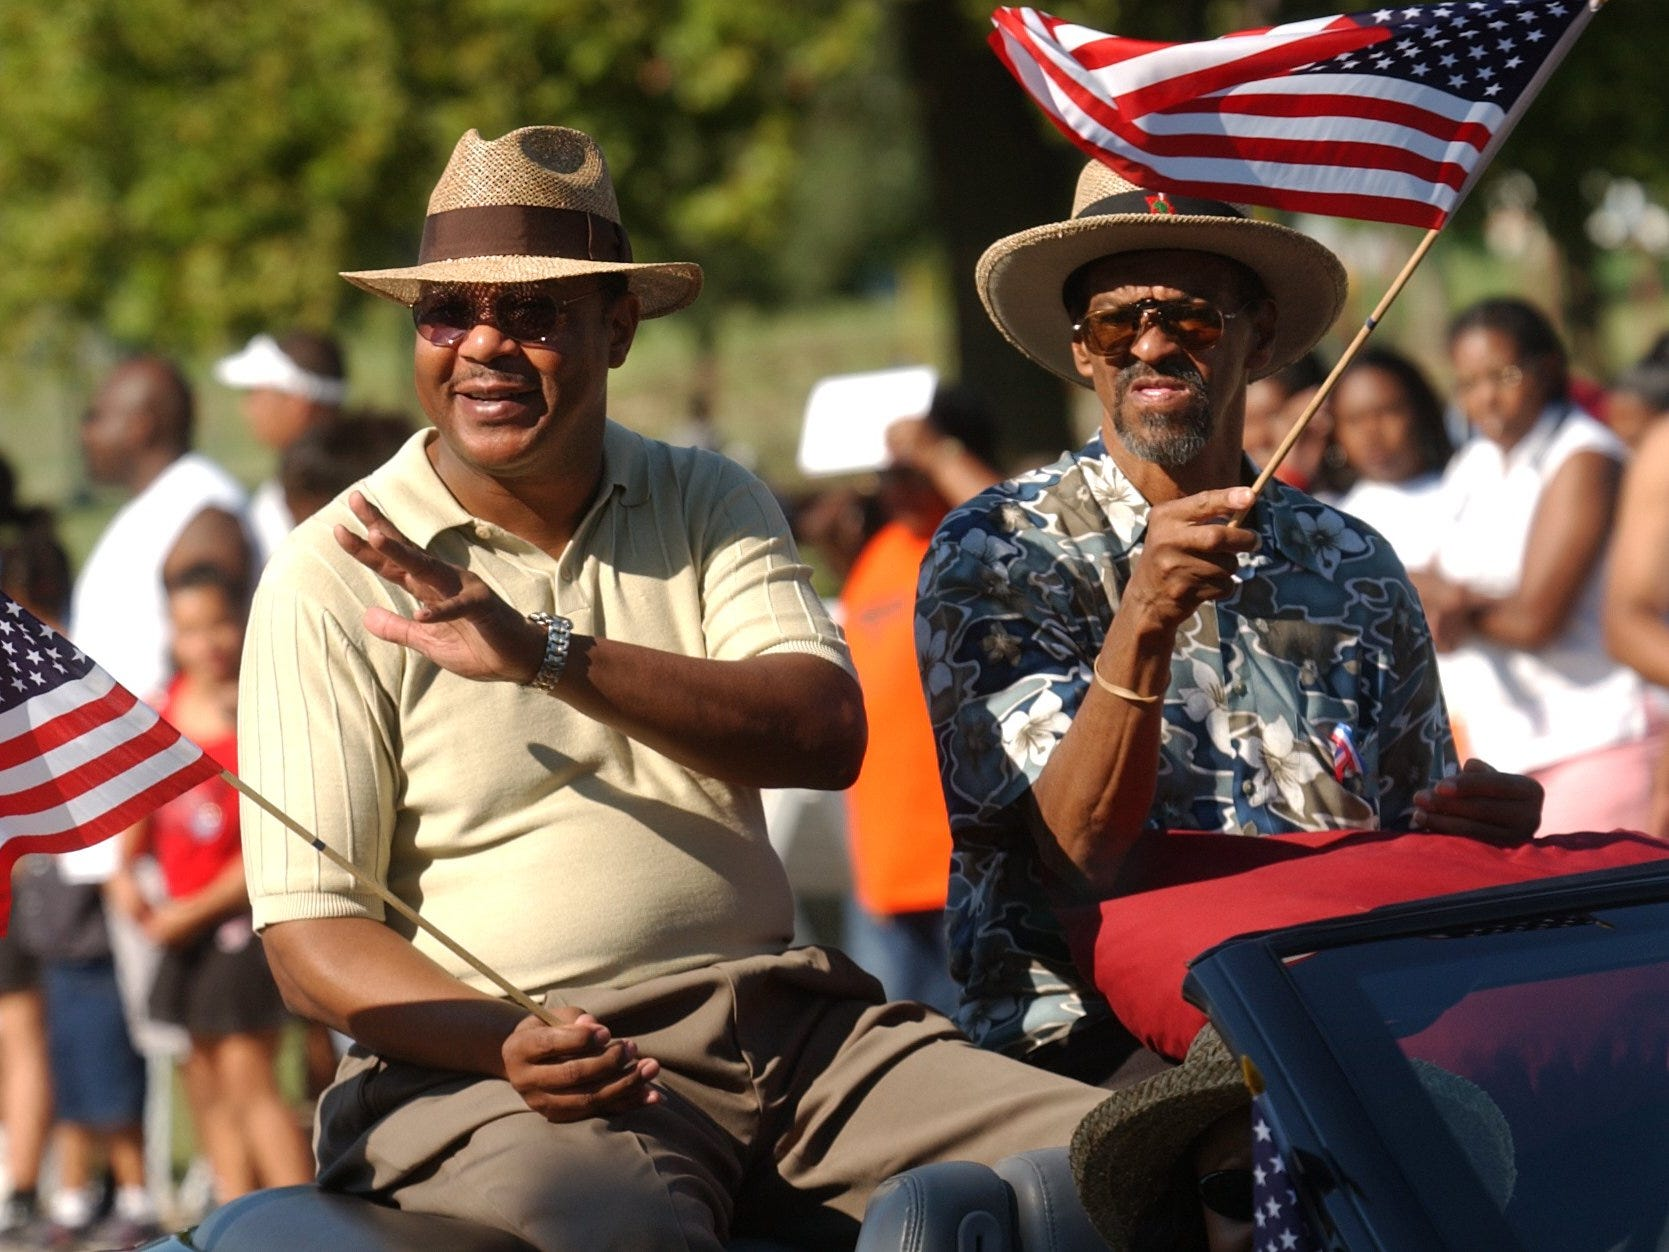 Park Day parade grand marshals Ron Ponds, left, and Denny Whayne wave to the crowd during festivities Saturday afternoon at Silver Springs Park in this 2003 photo.